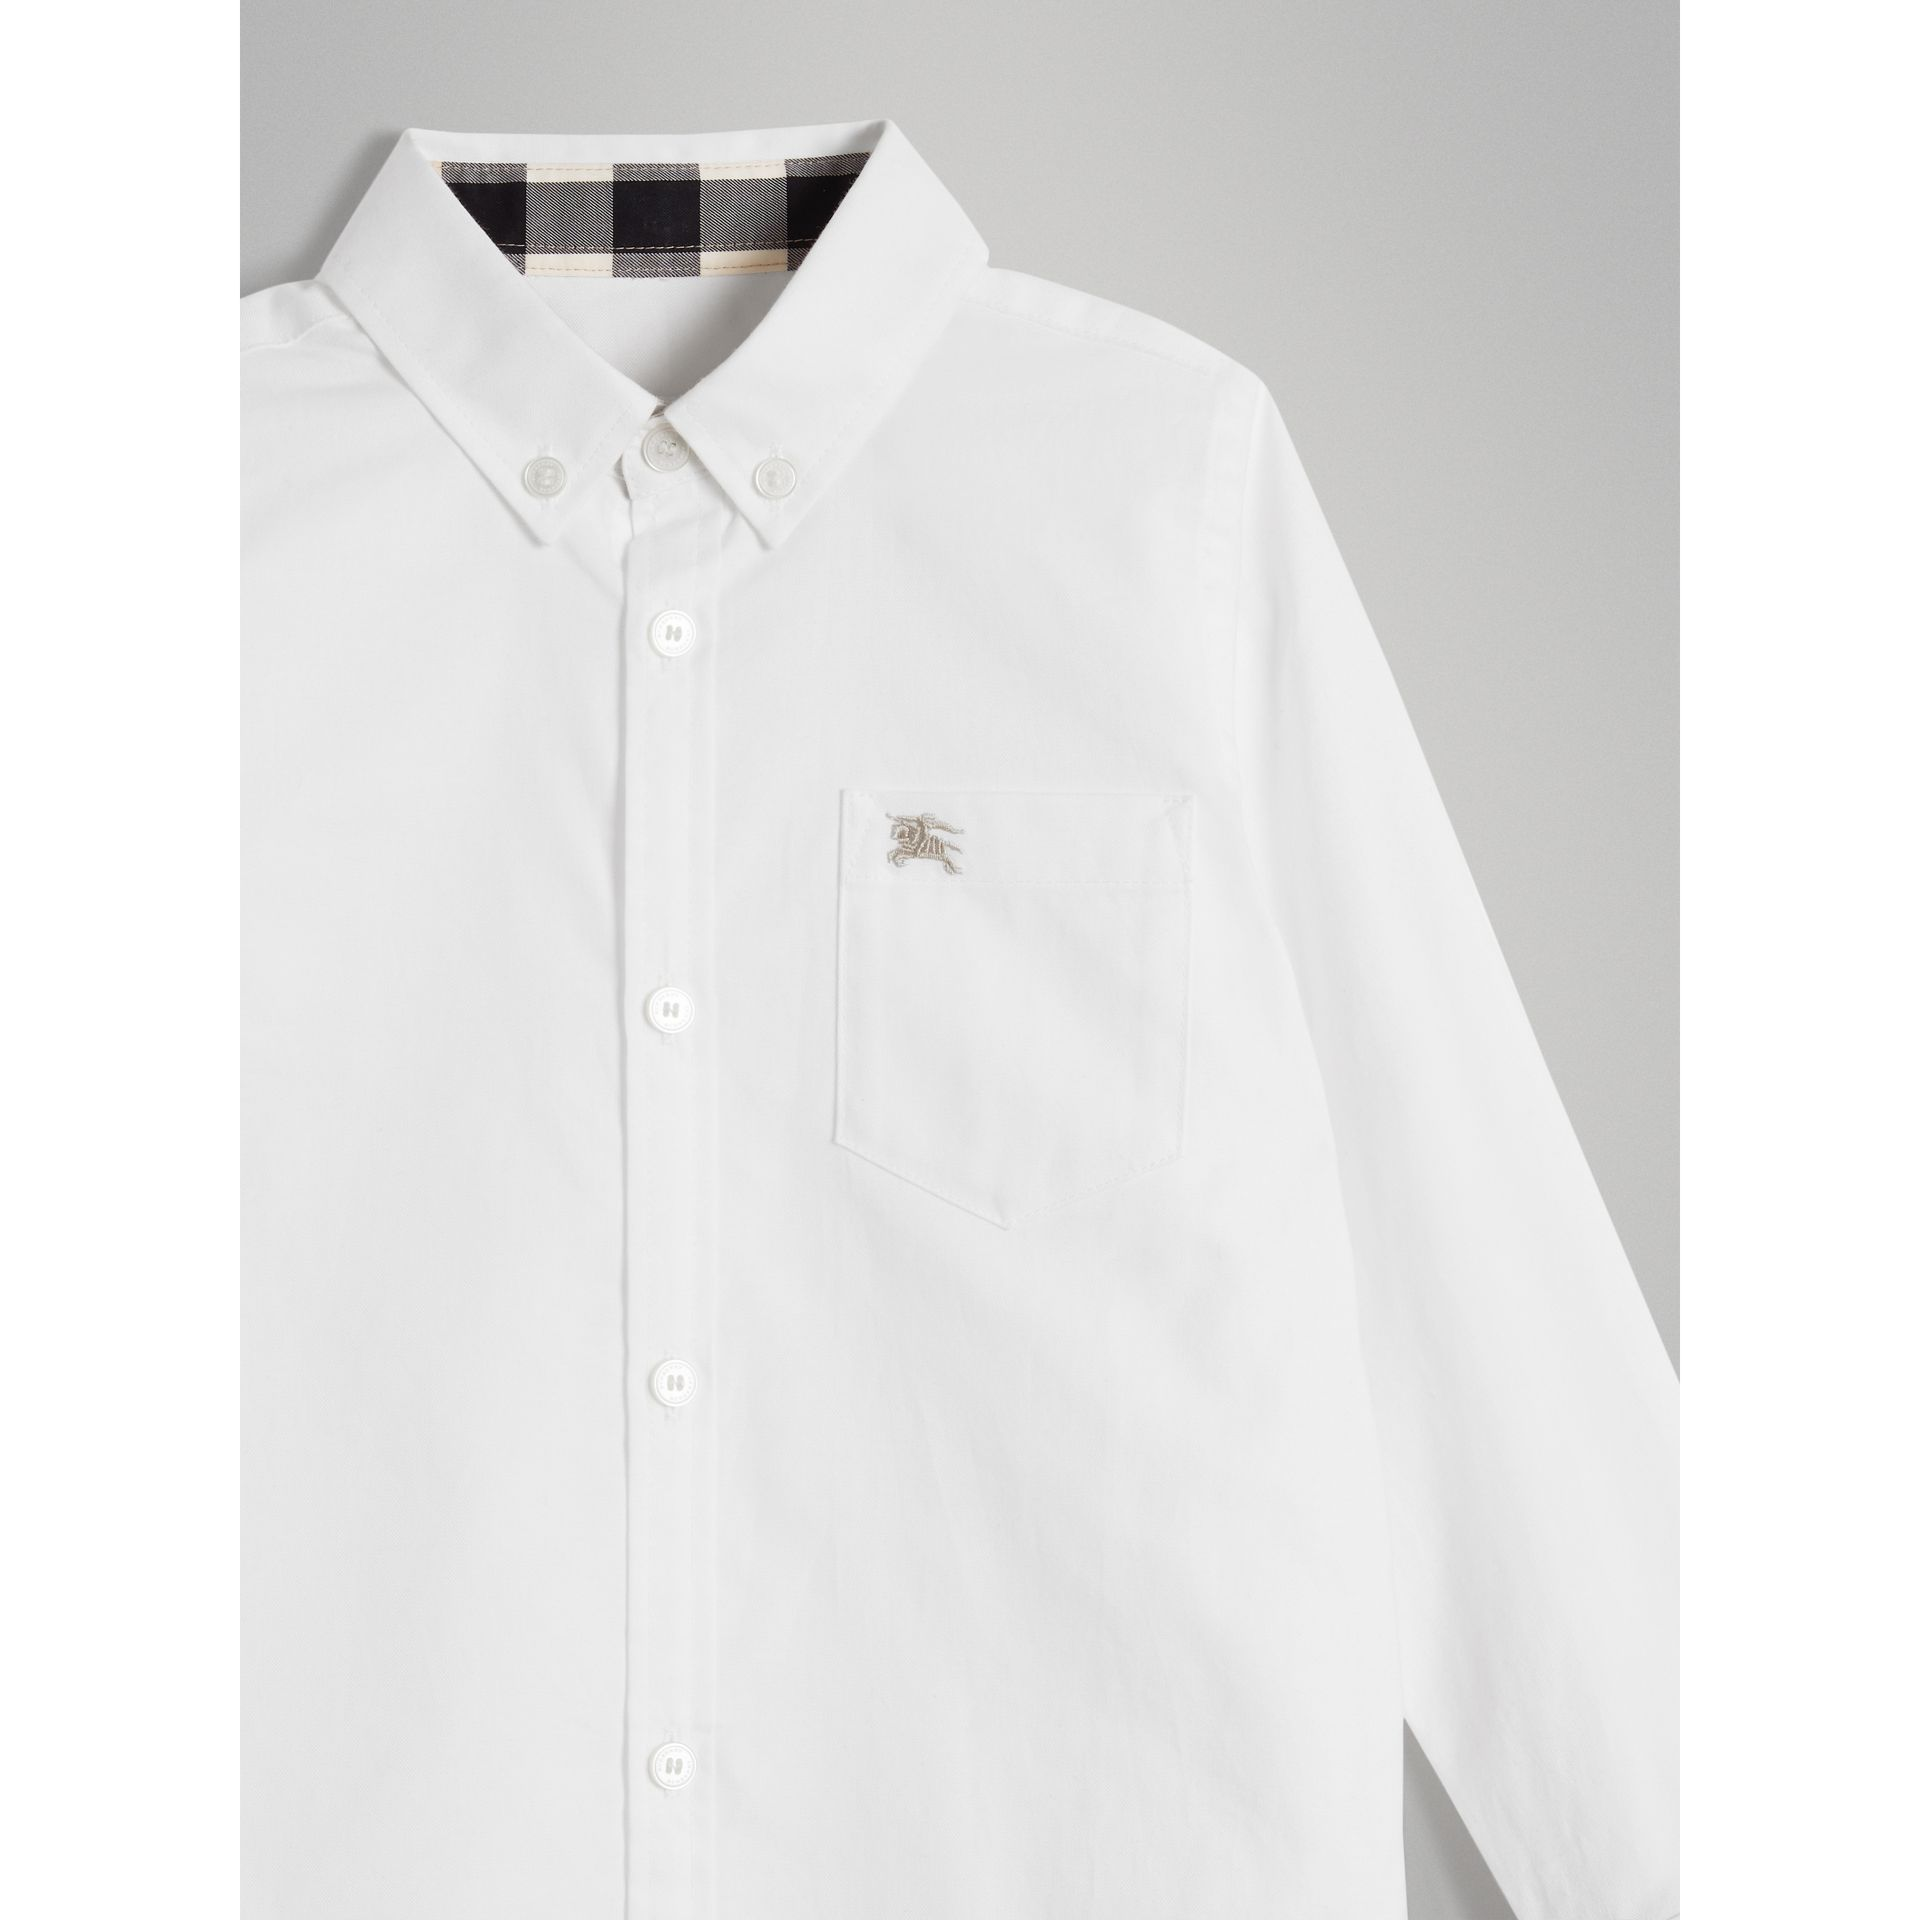 Classic Oxford Shirt in White | Burberry United Kingdom - gallery image 4